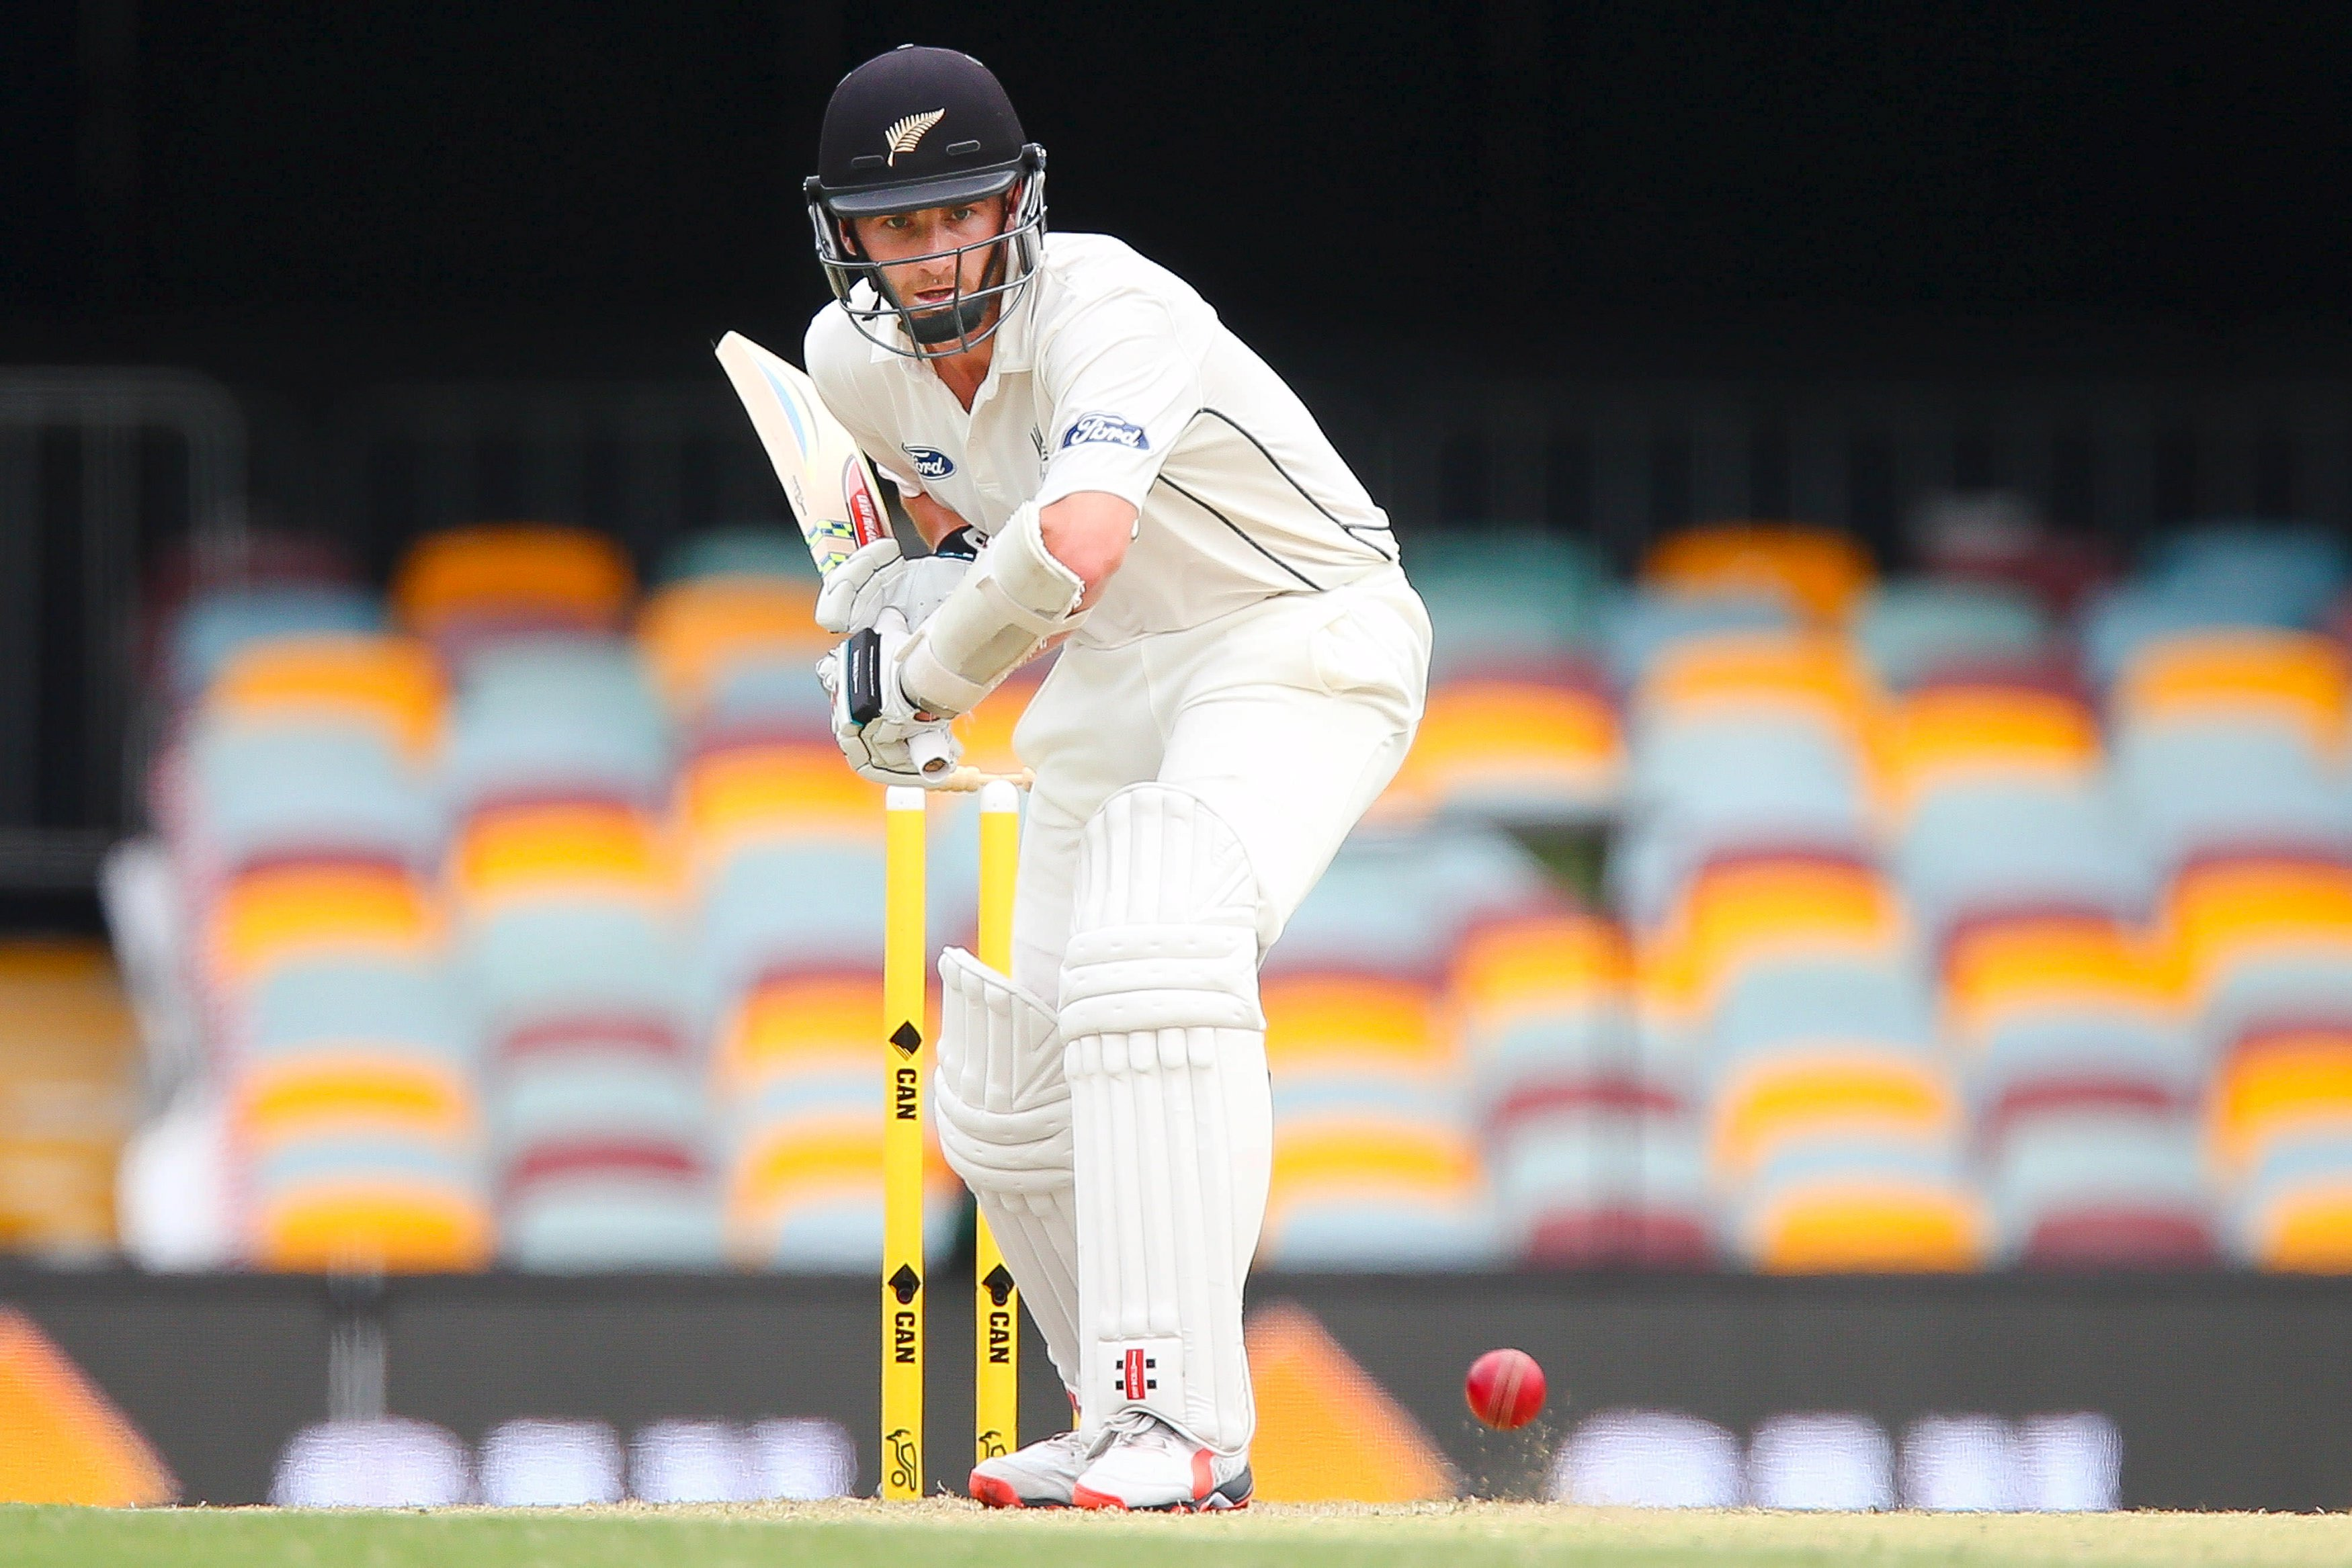 New Zealand batsman Kane Williamson shapes to play a drive, during the first cricket test match between Australia and New Zealand in Brisbane, November 8, 2015. REUTERS/Patrick Hamiltonu2028